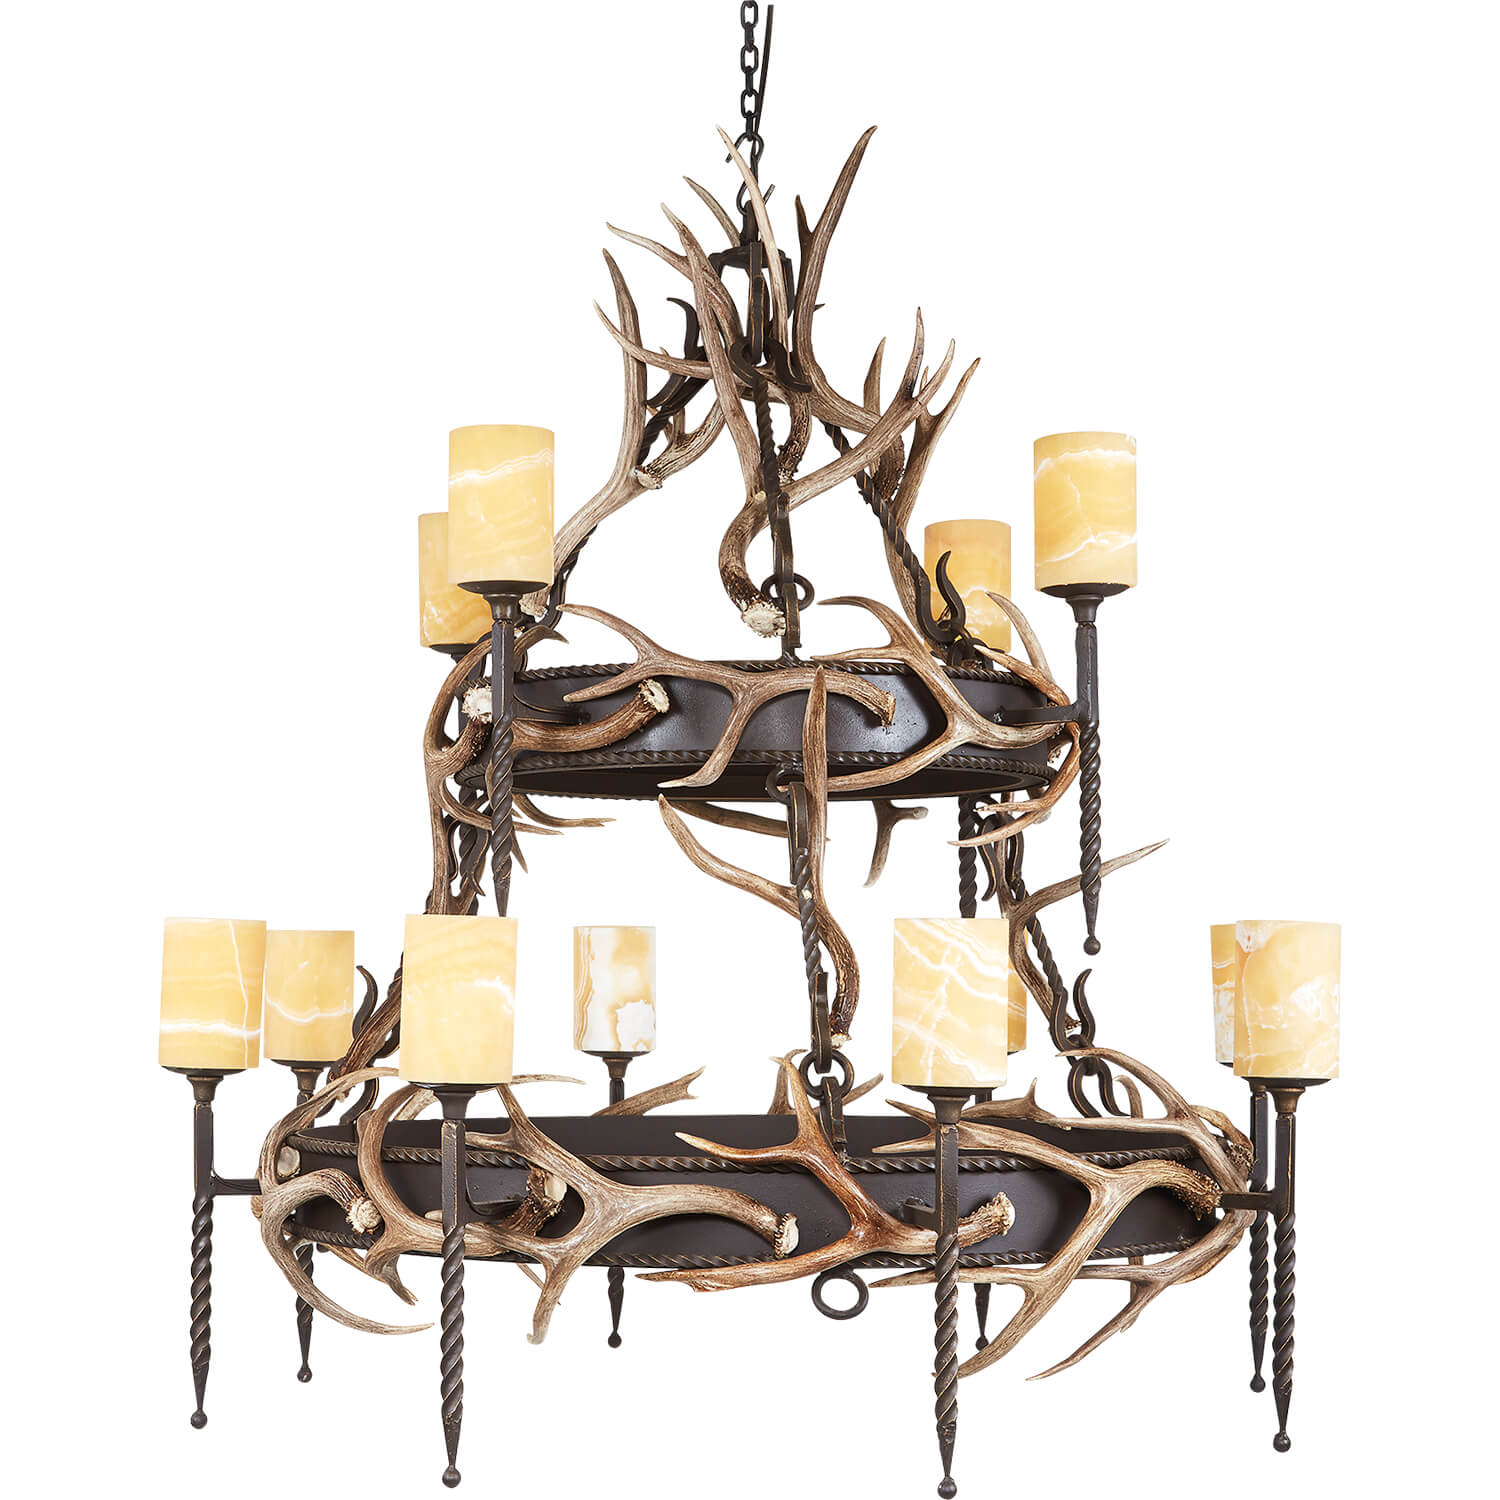 12 Light, 2 Tier Lodge with Antlers & Onyx - Antlerworx